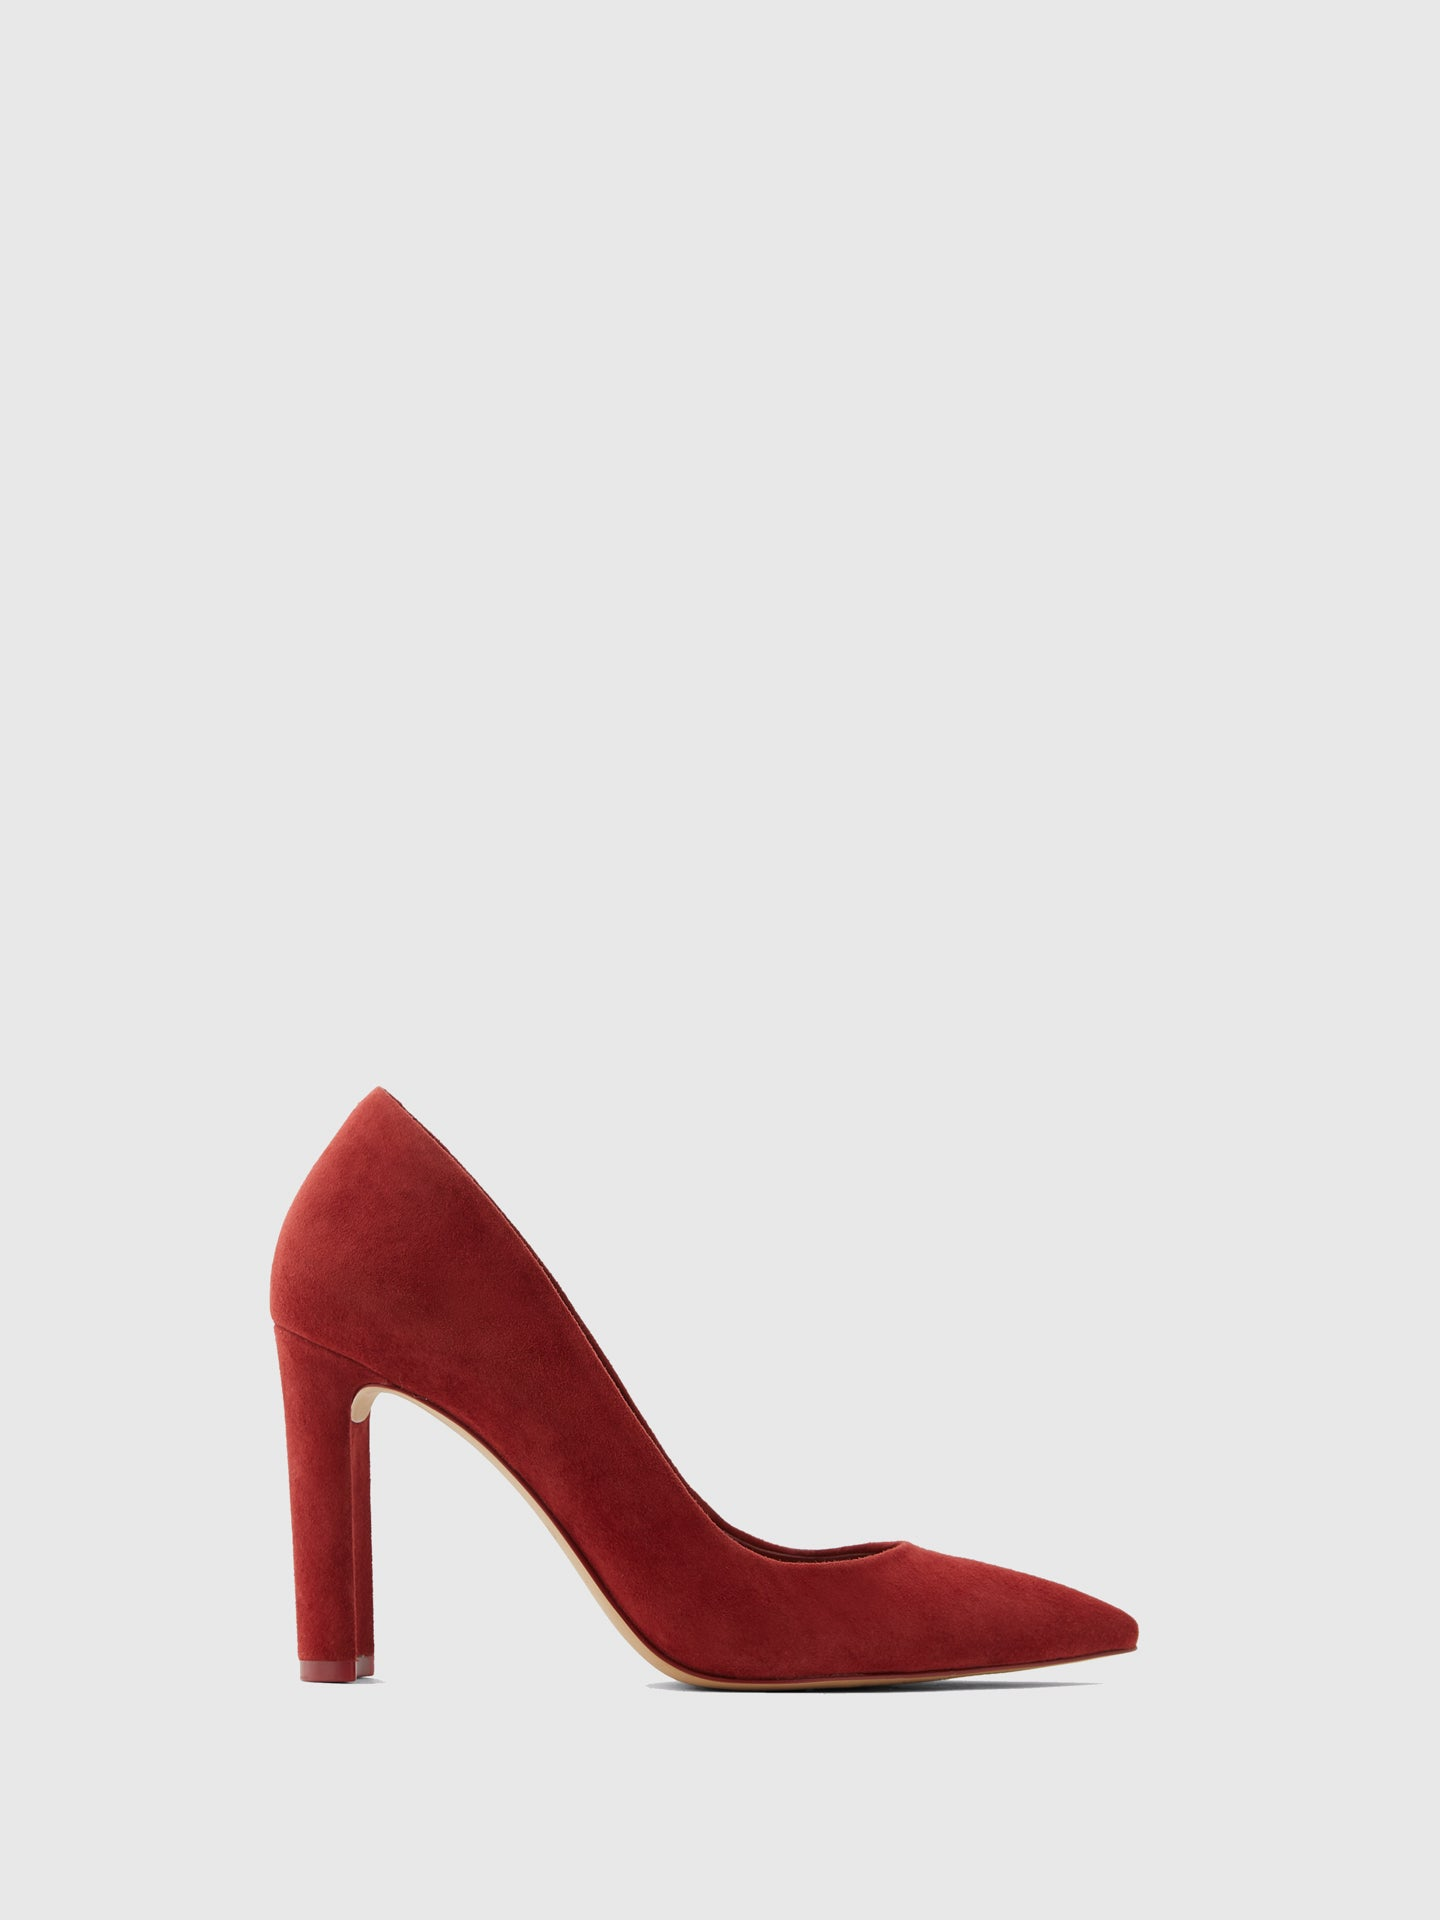 Aldo DarkRed Classic Pumps